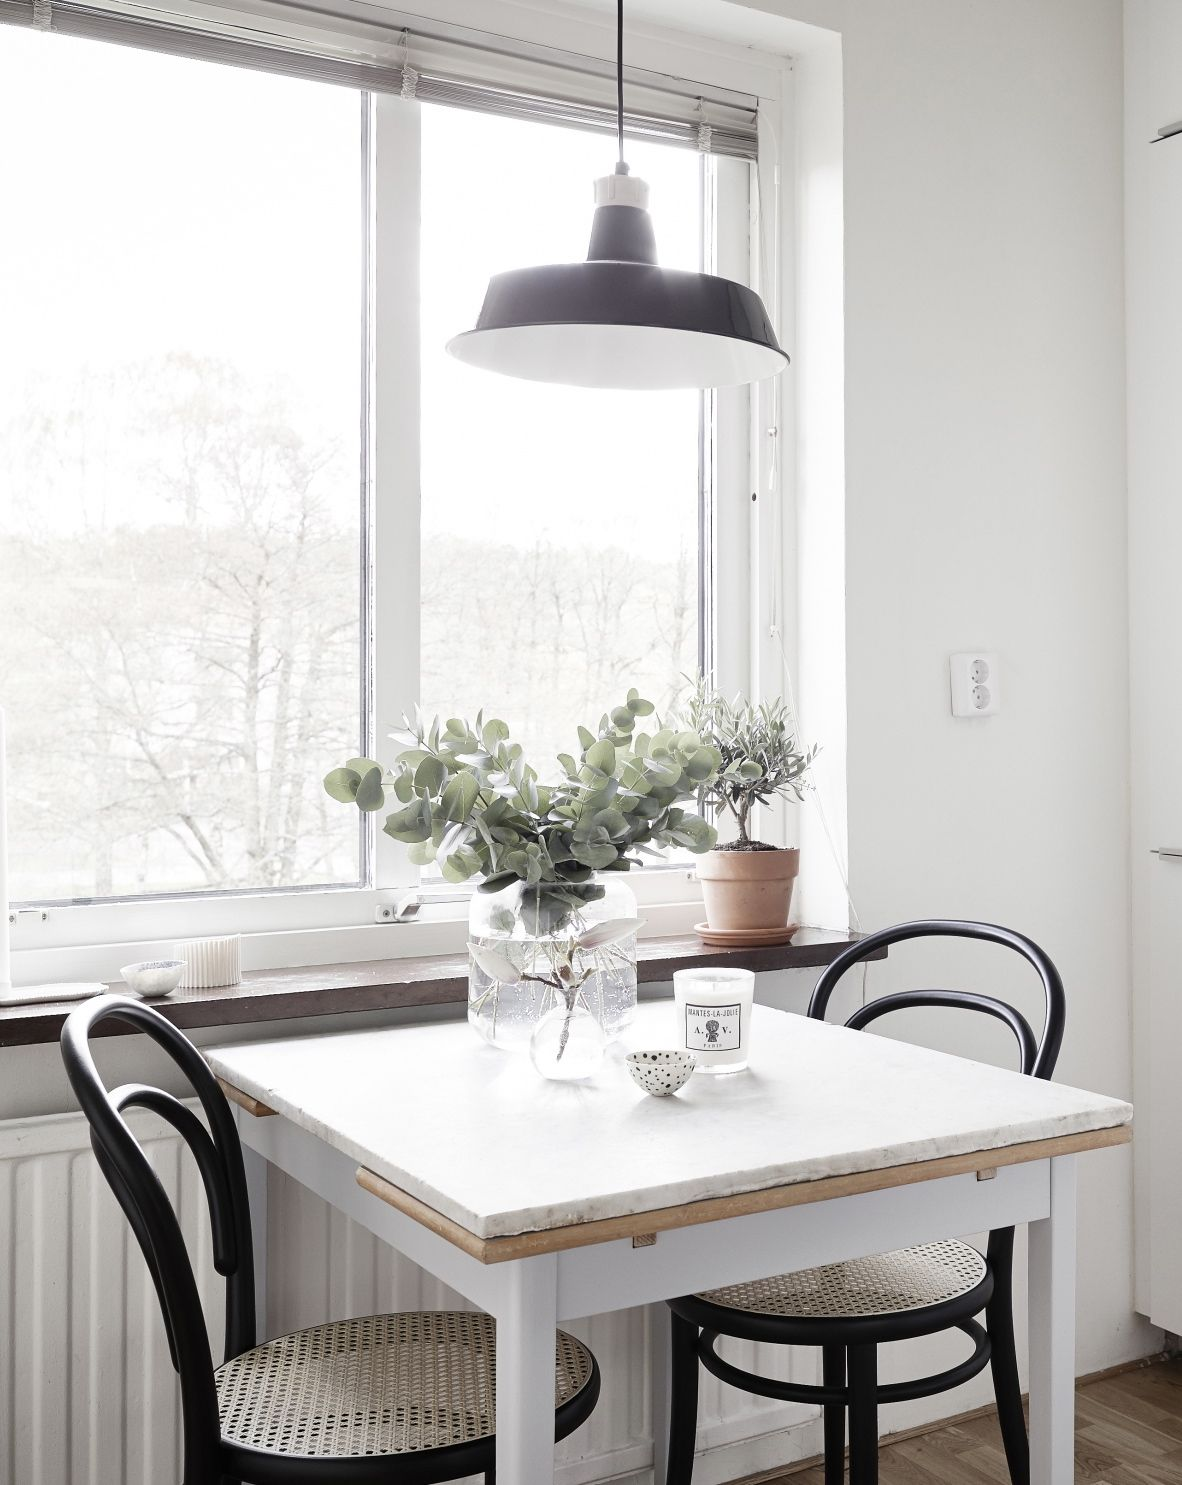 Dining table near the window, chairs k i t c h e